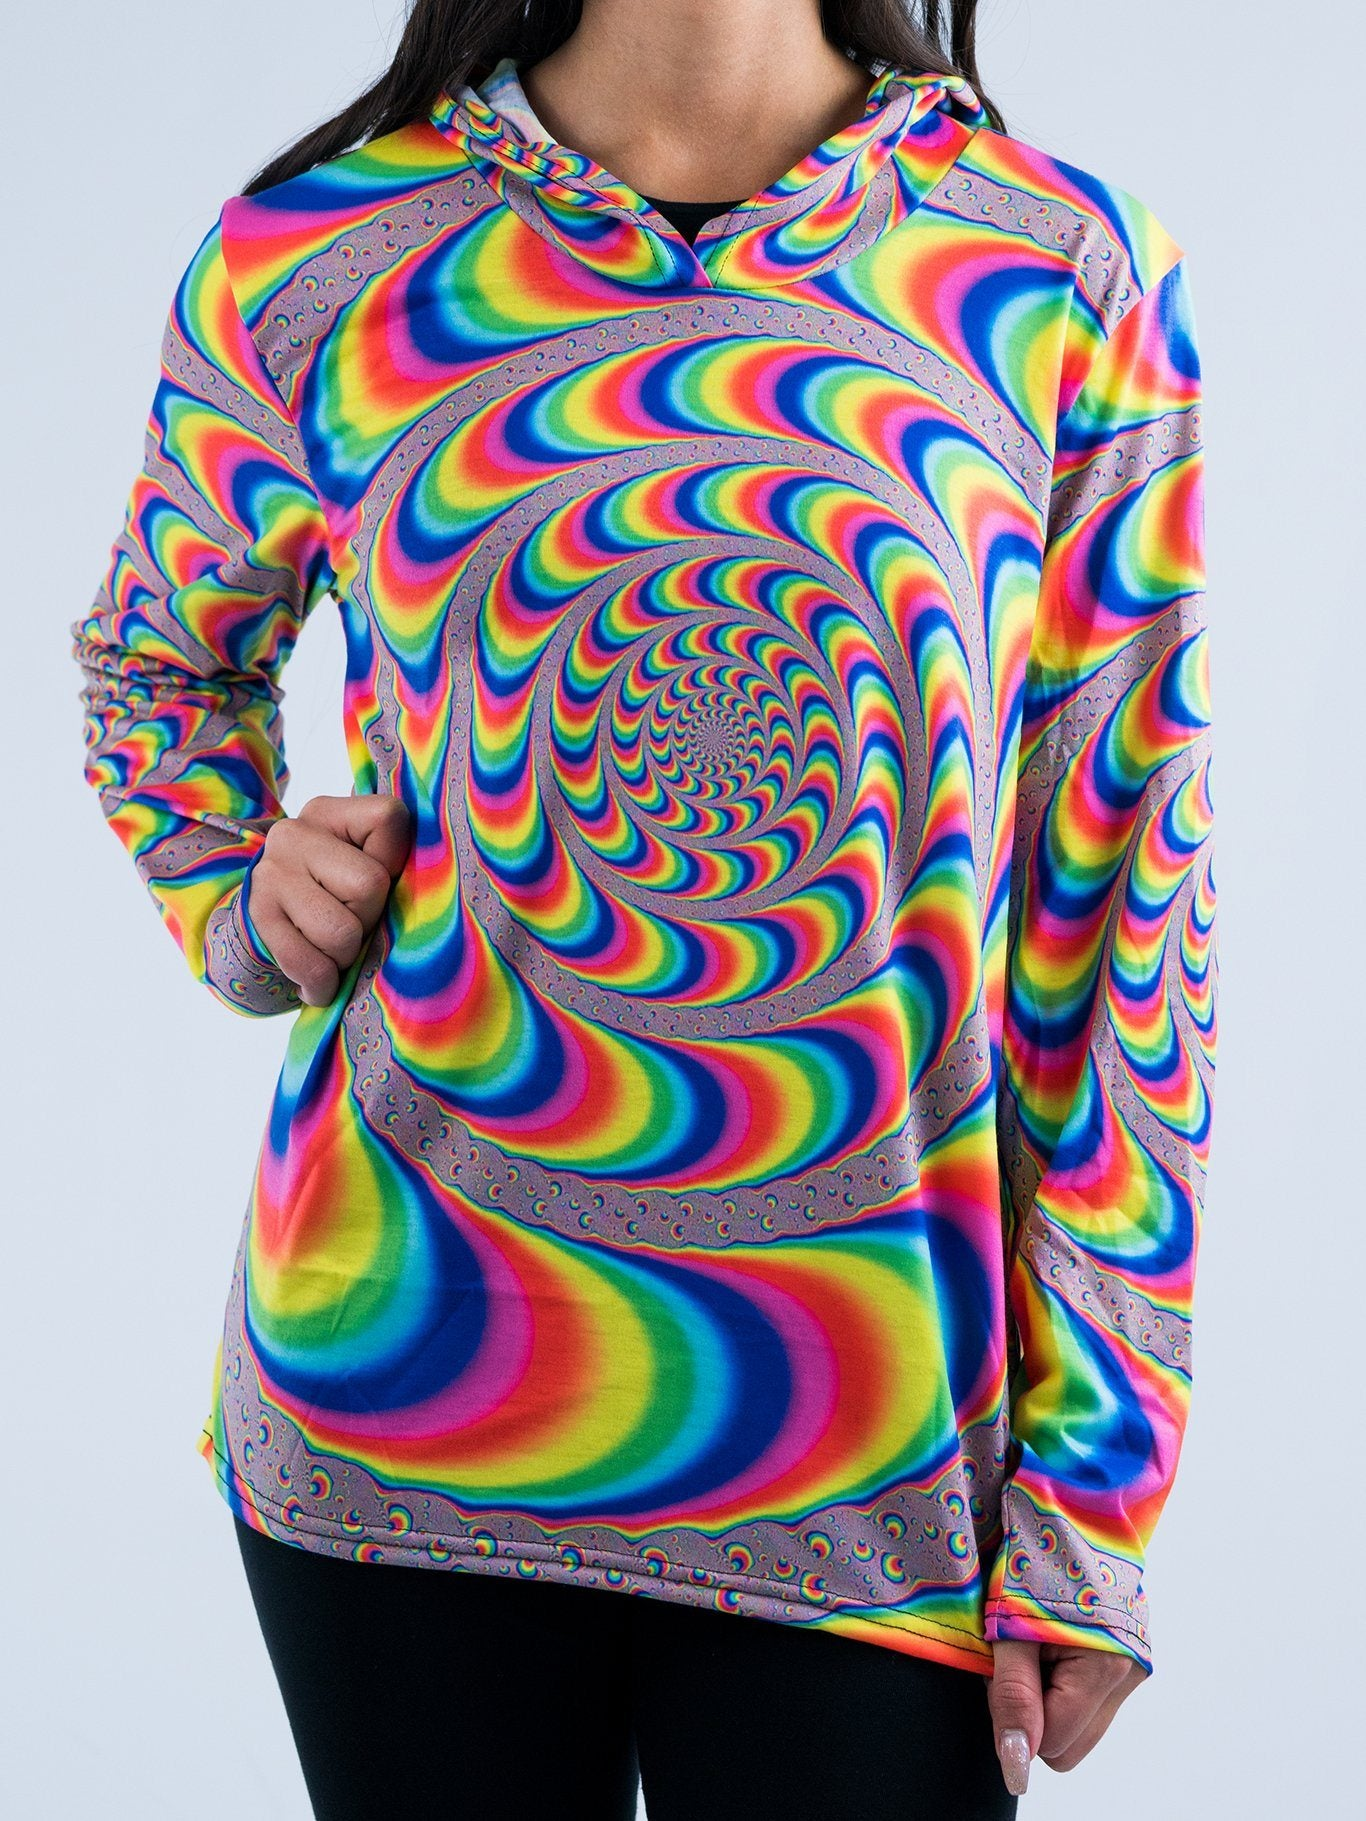 Trippy Spiral Unisex Hooded Long Sleeve Shirt Long Sleeve T6